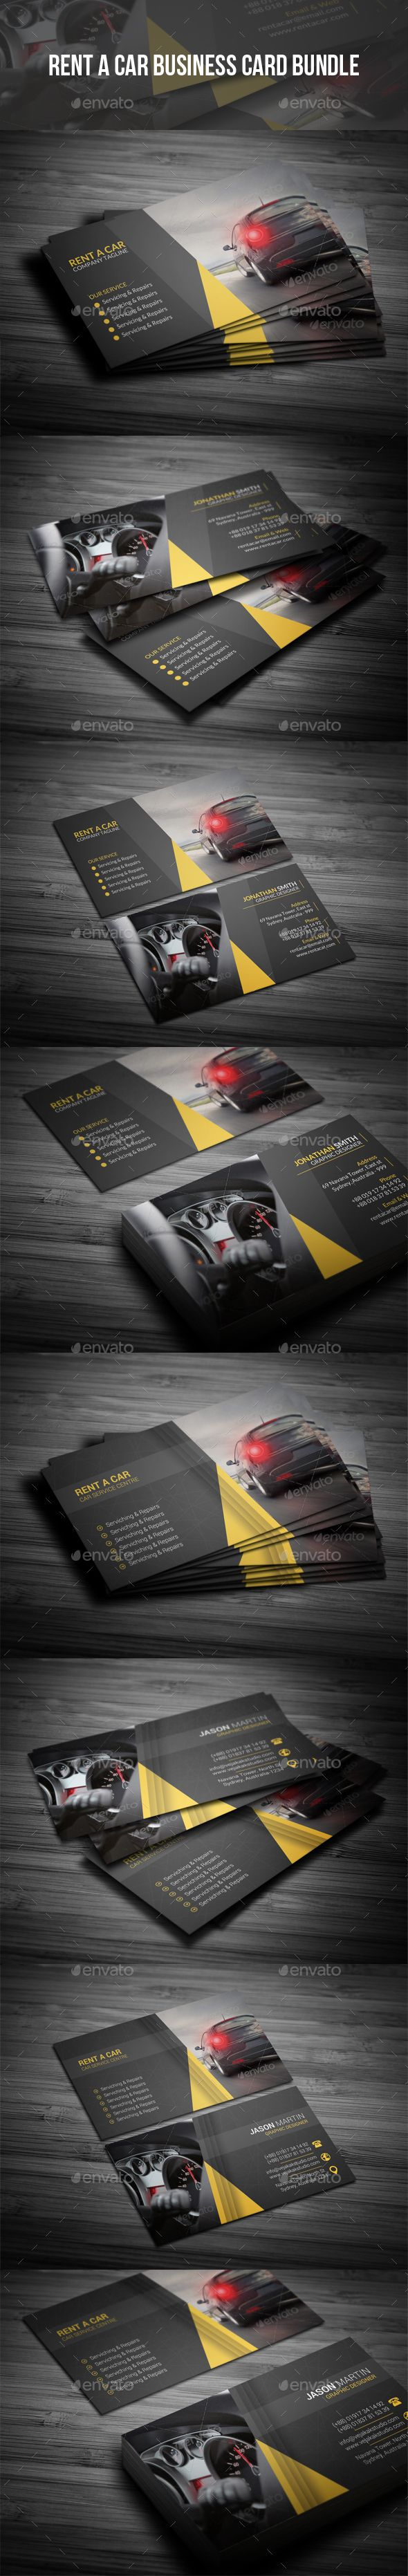 Rent A Car Business Card Bundle - #Creative #Business #Cards Download here: https://graphicriver.net/item/rent-a-car-business-card-bundle/19226876?ref=alena994